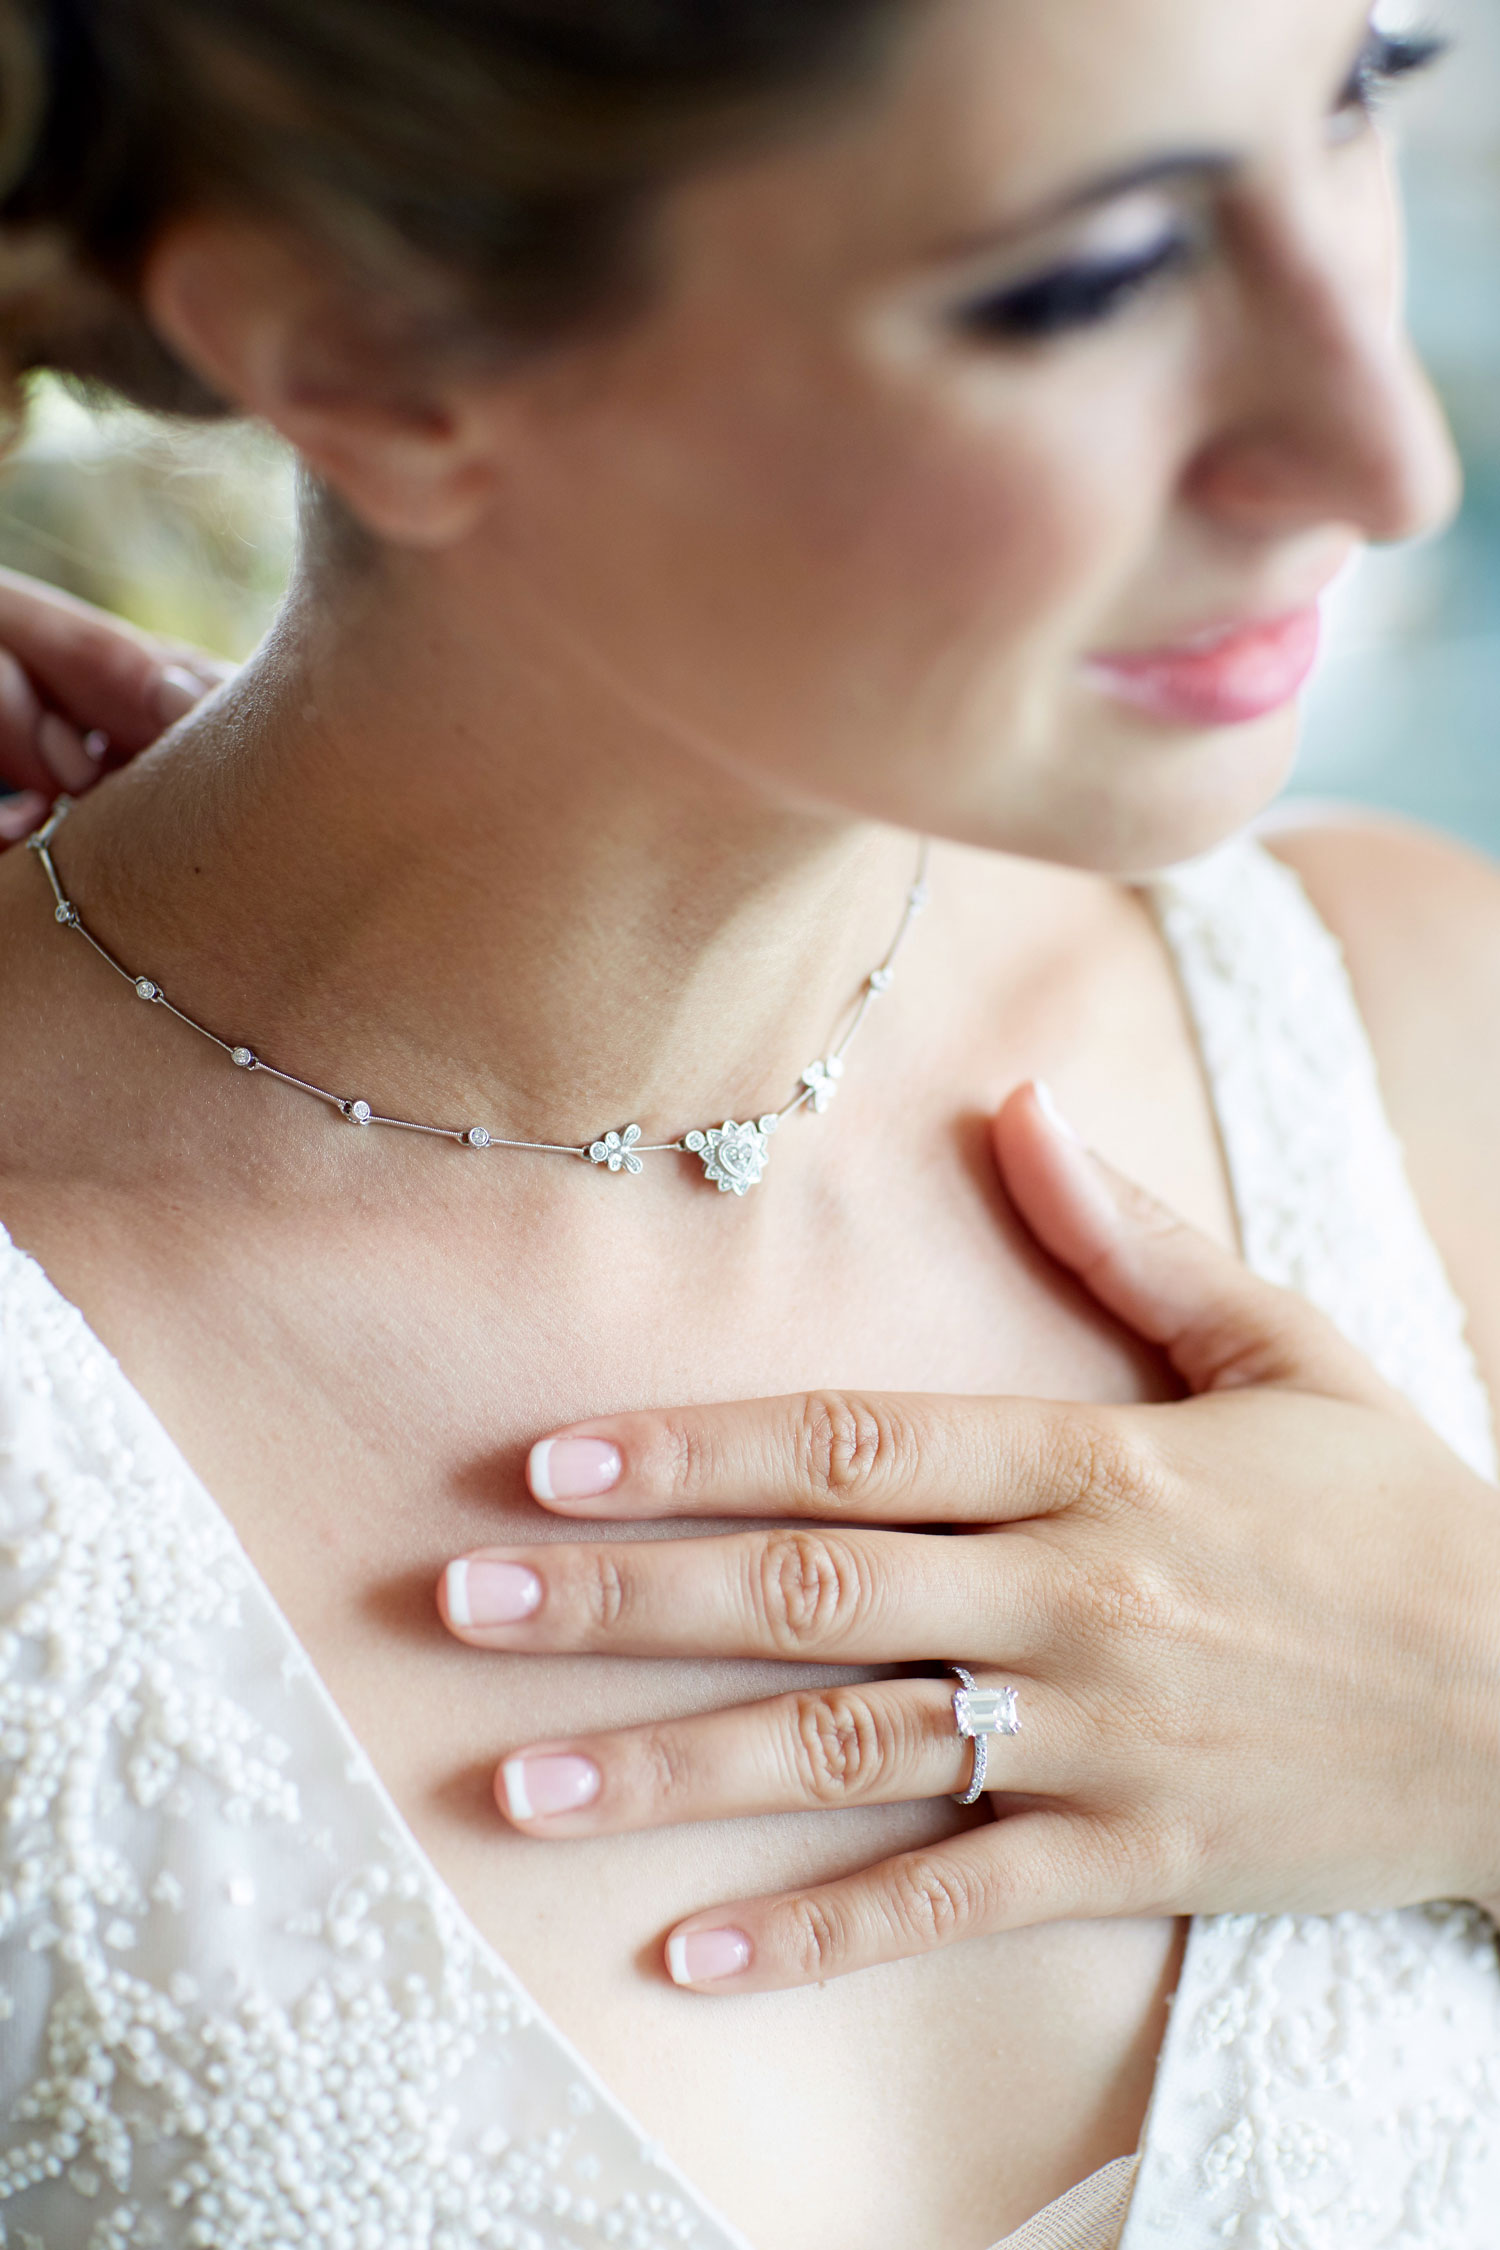 Bride with necklace and emerald cut solitaire engagement ring get the look of keleigh sperry's e ring